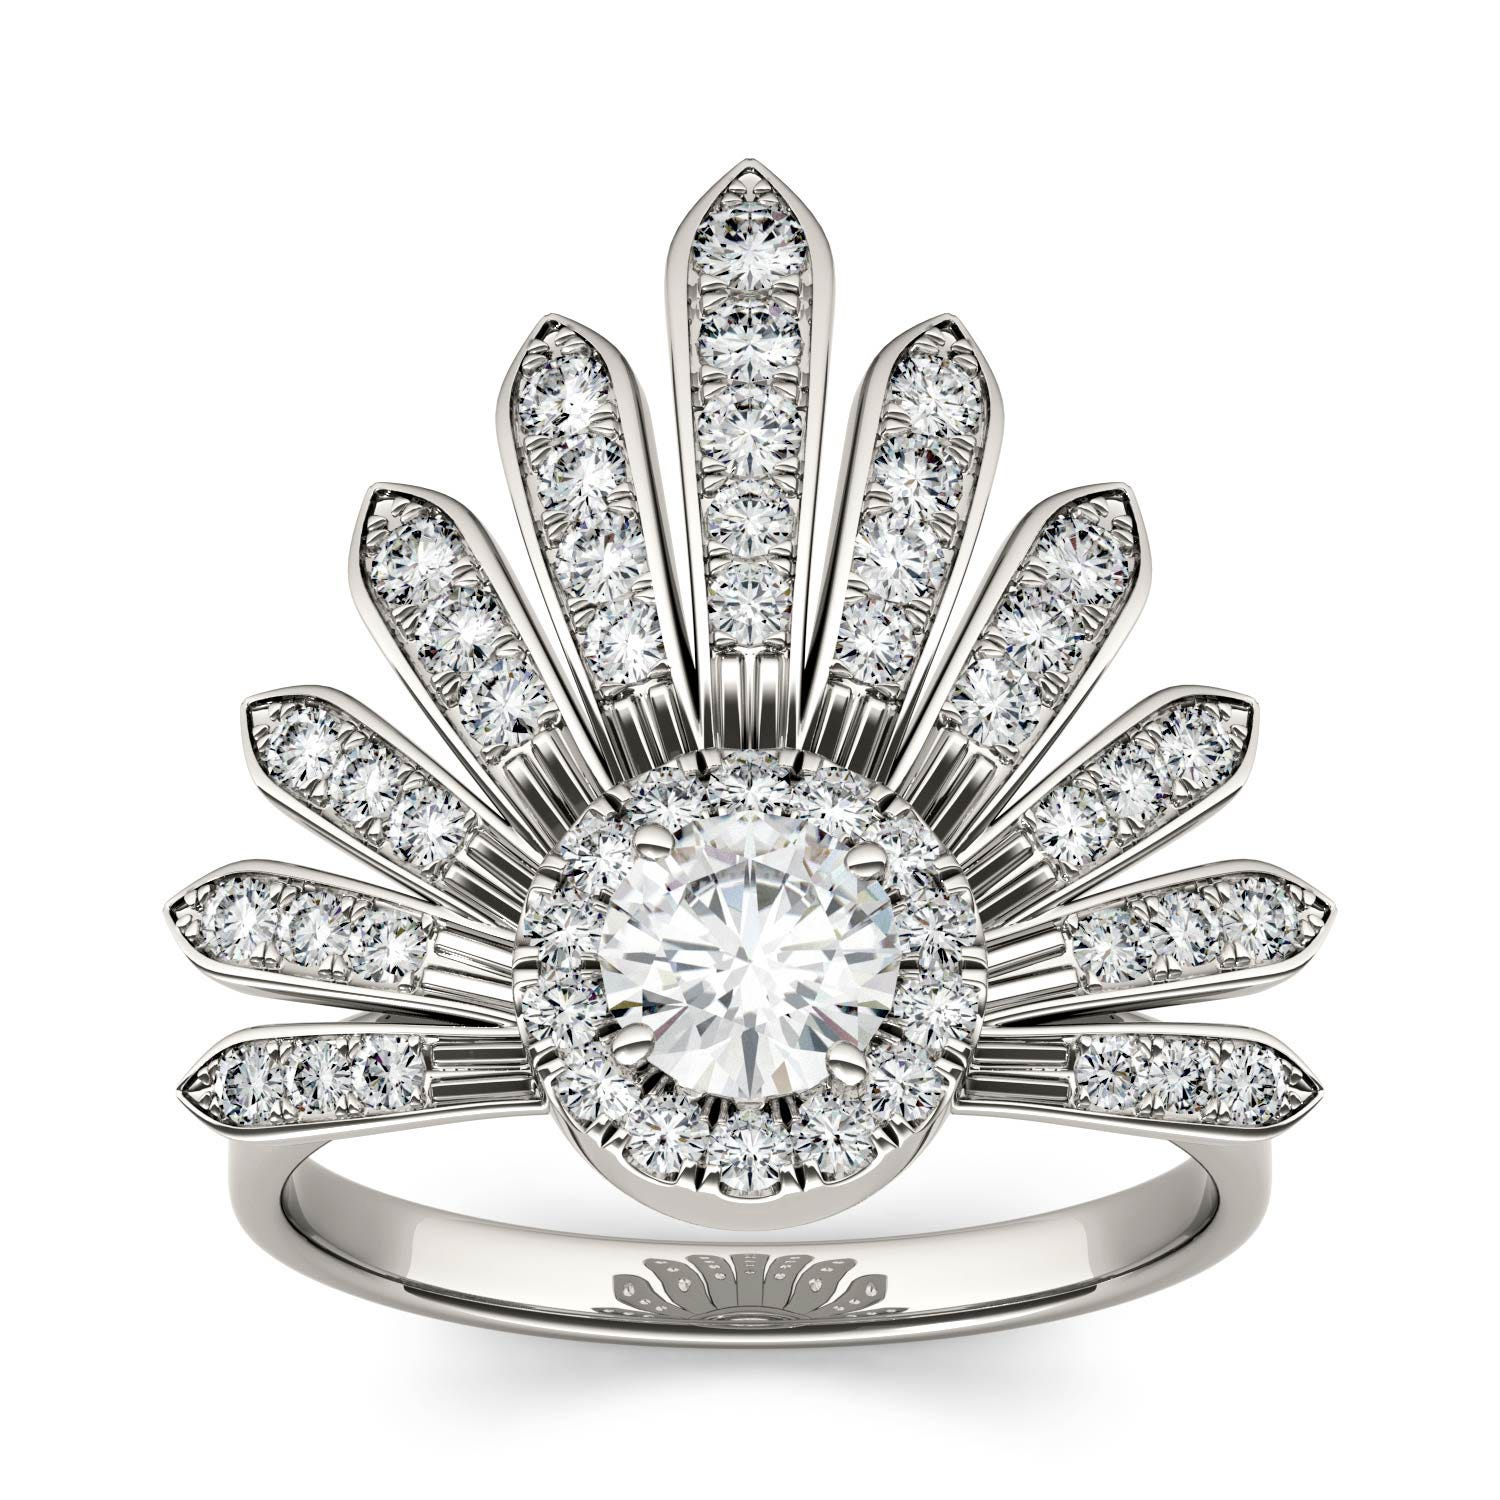 Round 0.88cttw DEW Moissanite Nature Inspired Fashion Ring in 14K White Gold 529149